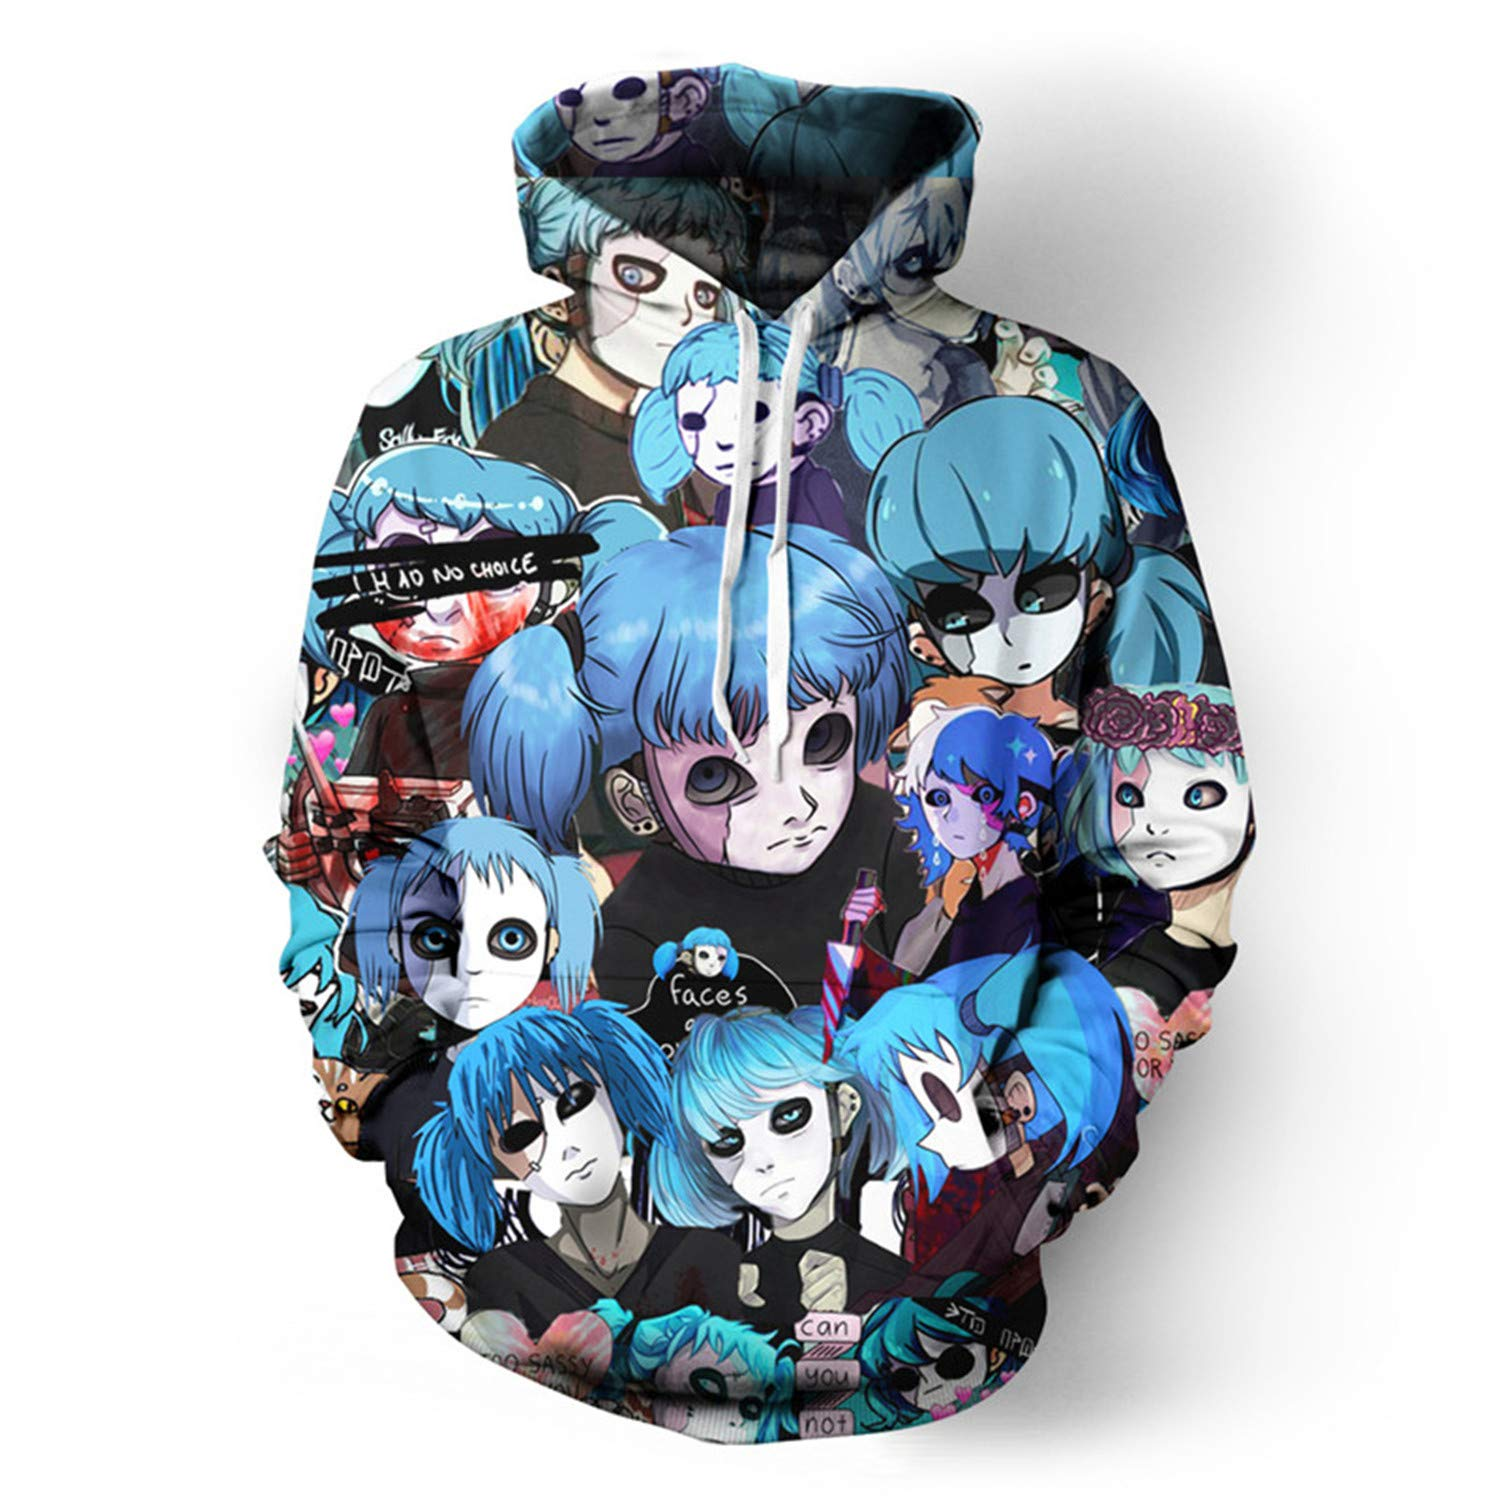 New Game Face Cool Boys Hoodies Unisex Anime Tops Summer//Autumn Streetwear